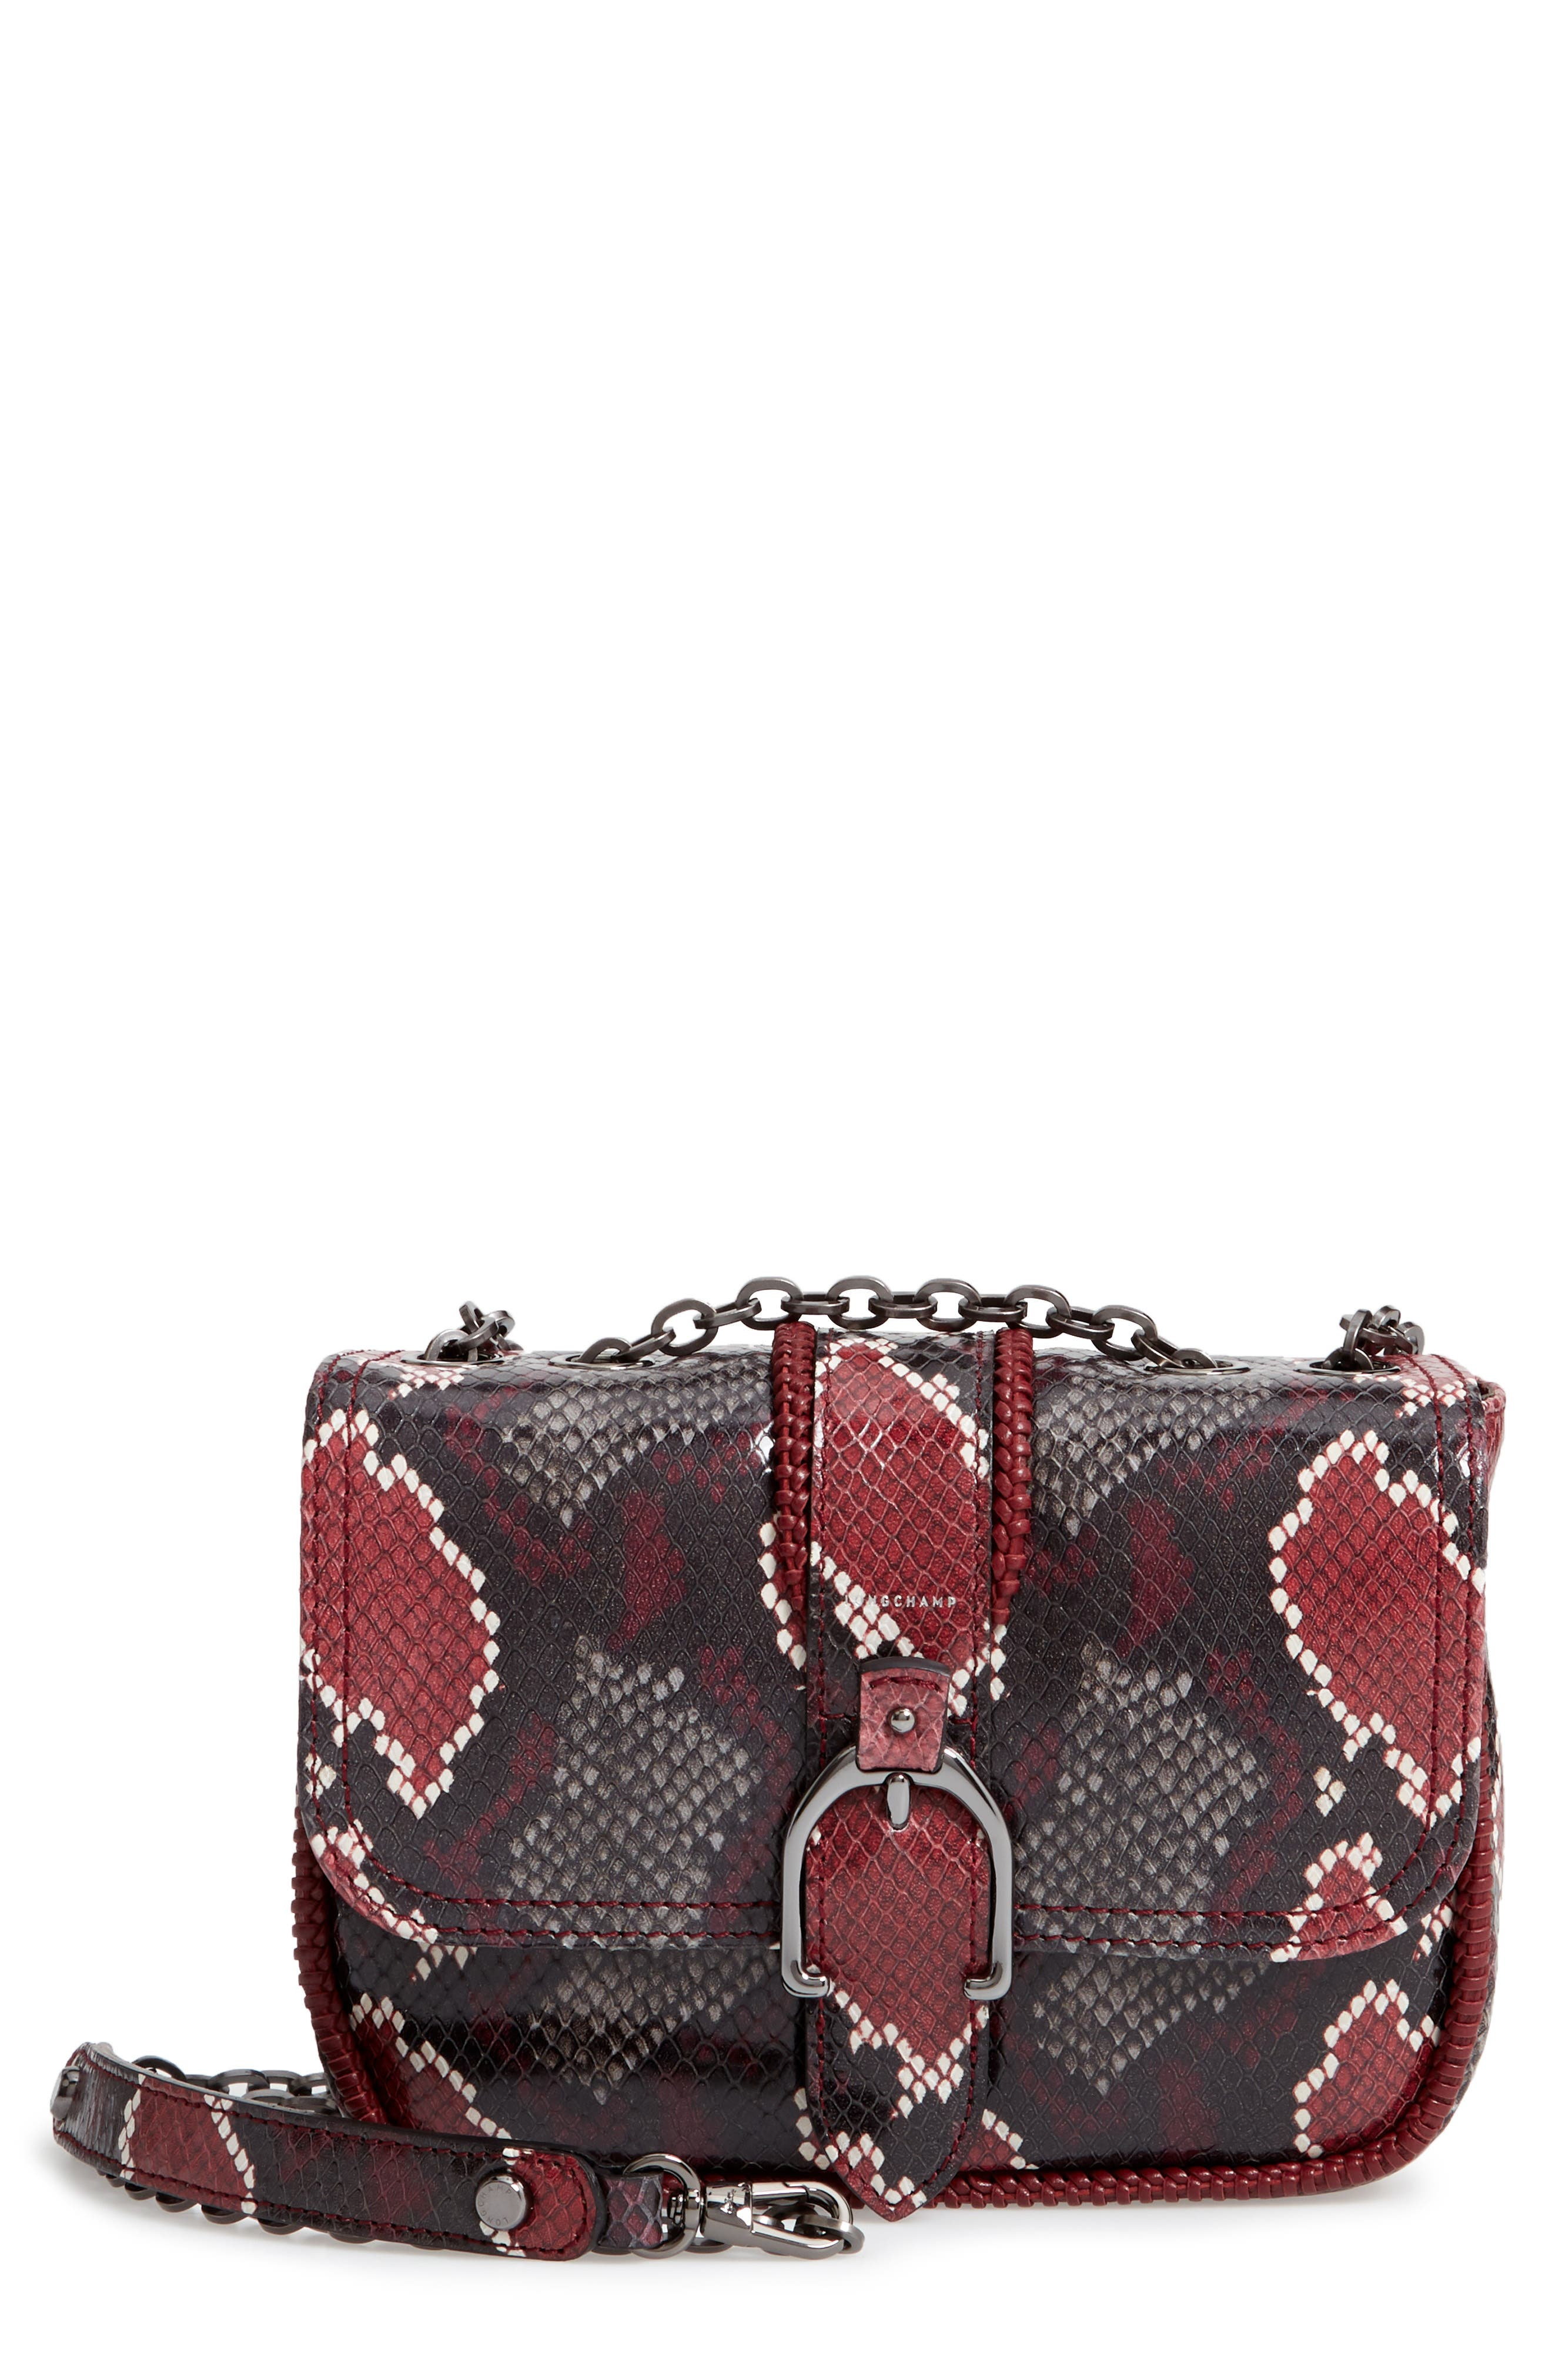 Amazone Mini Convertible Python-Embossed Leather Shoulder Bag in Burgundy